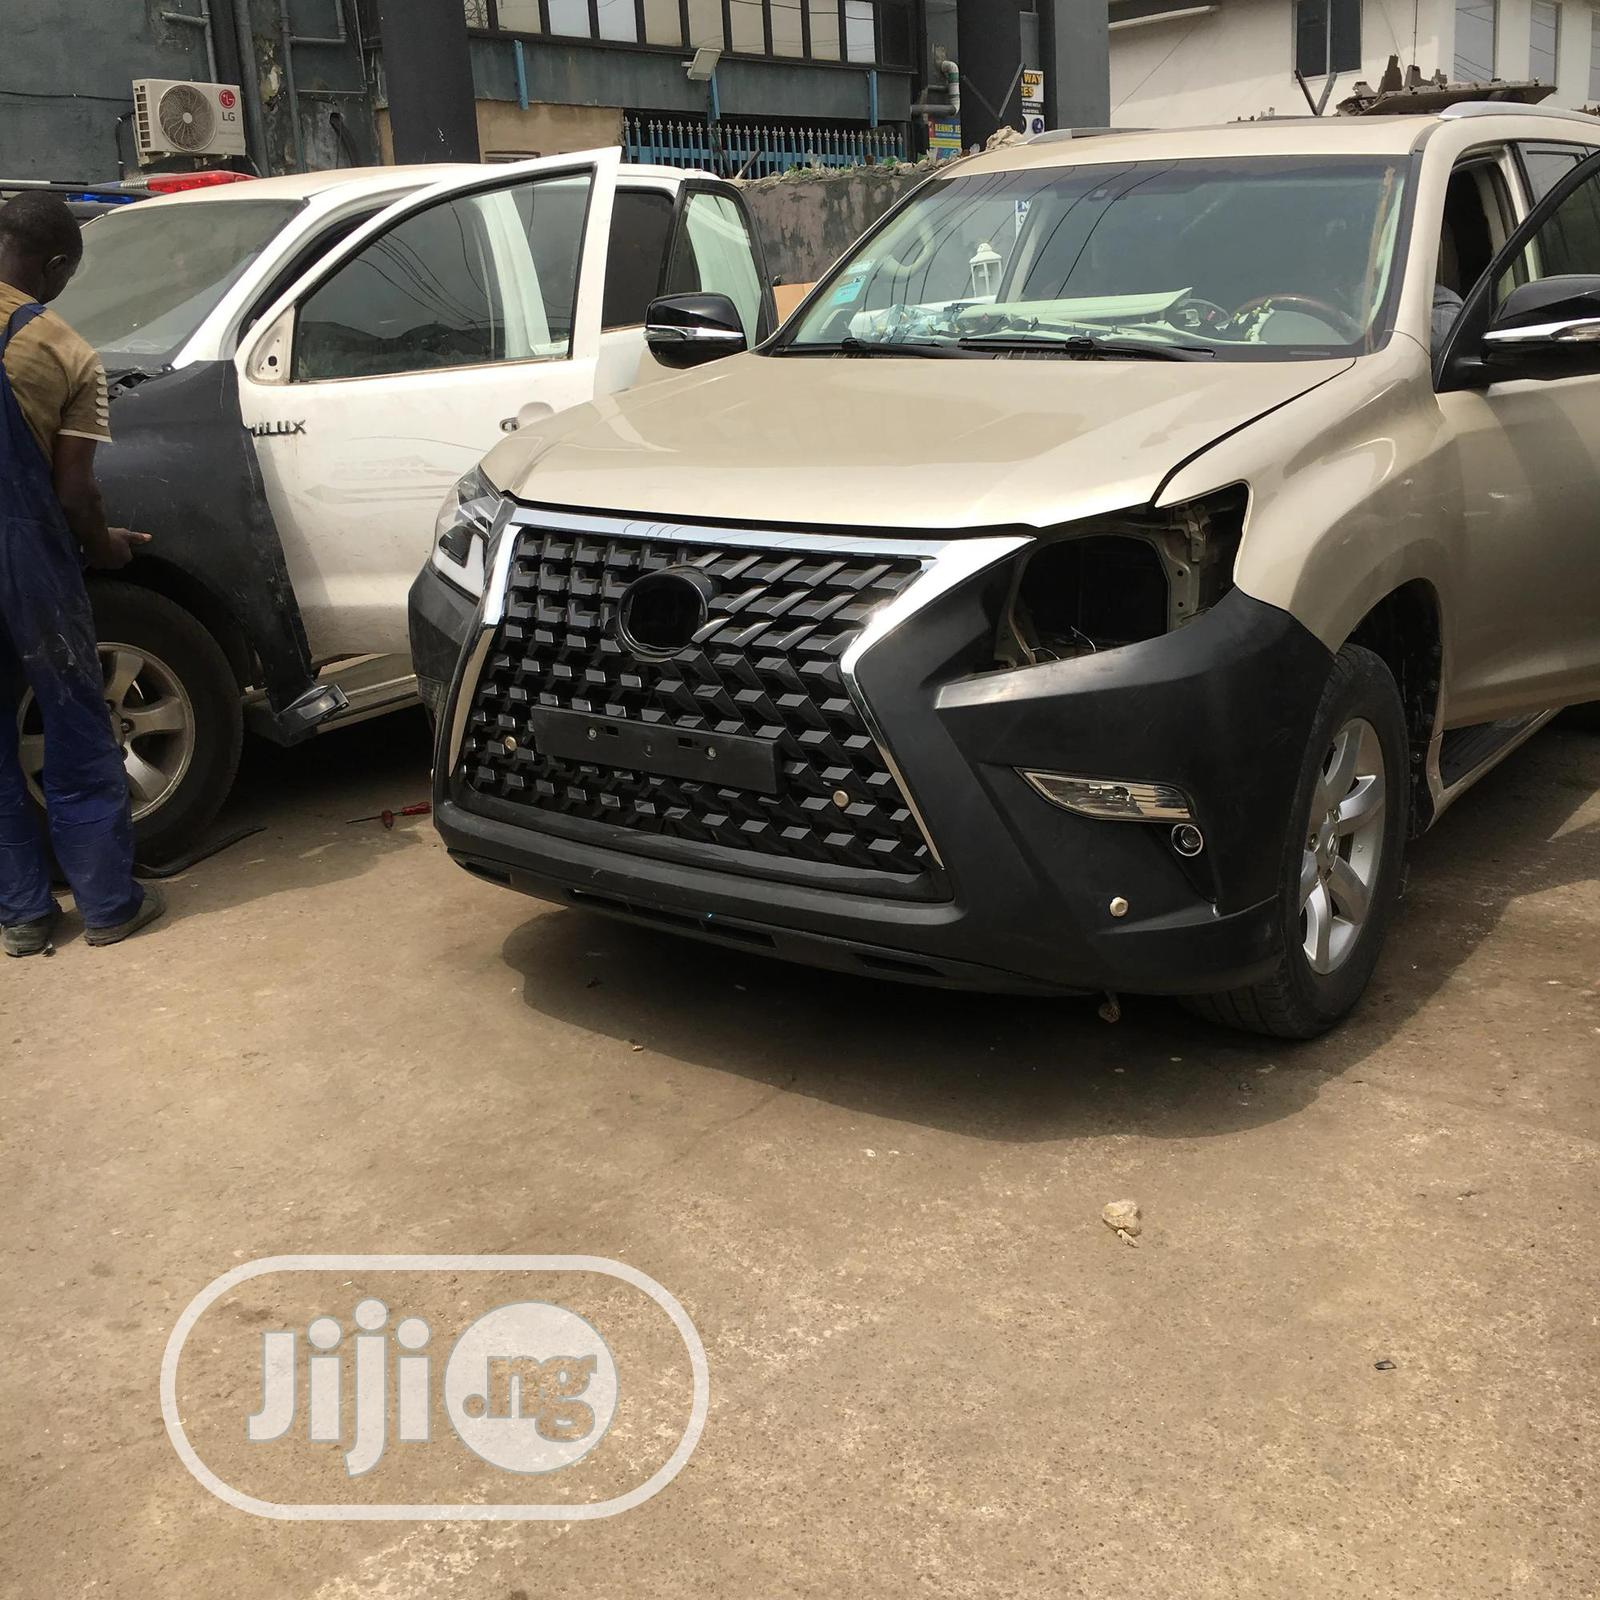 Upgrade Gx 460 From 2010 To 2020 | Automotive Services for sale in Mushin, Lagos State, Nigeria